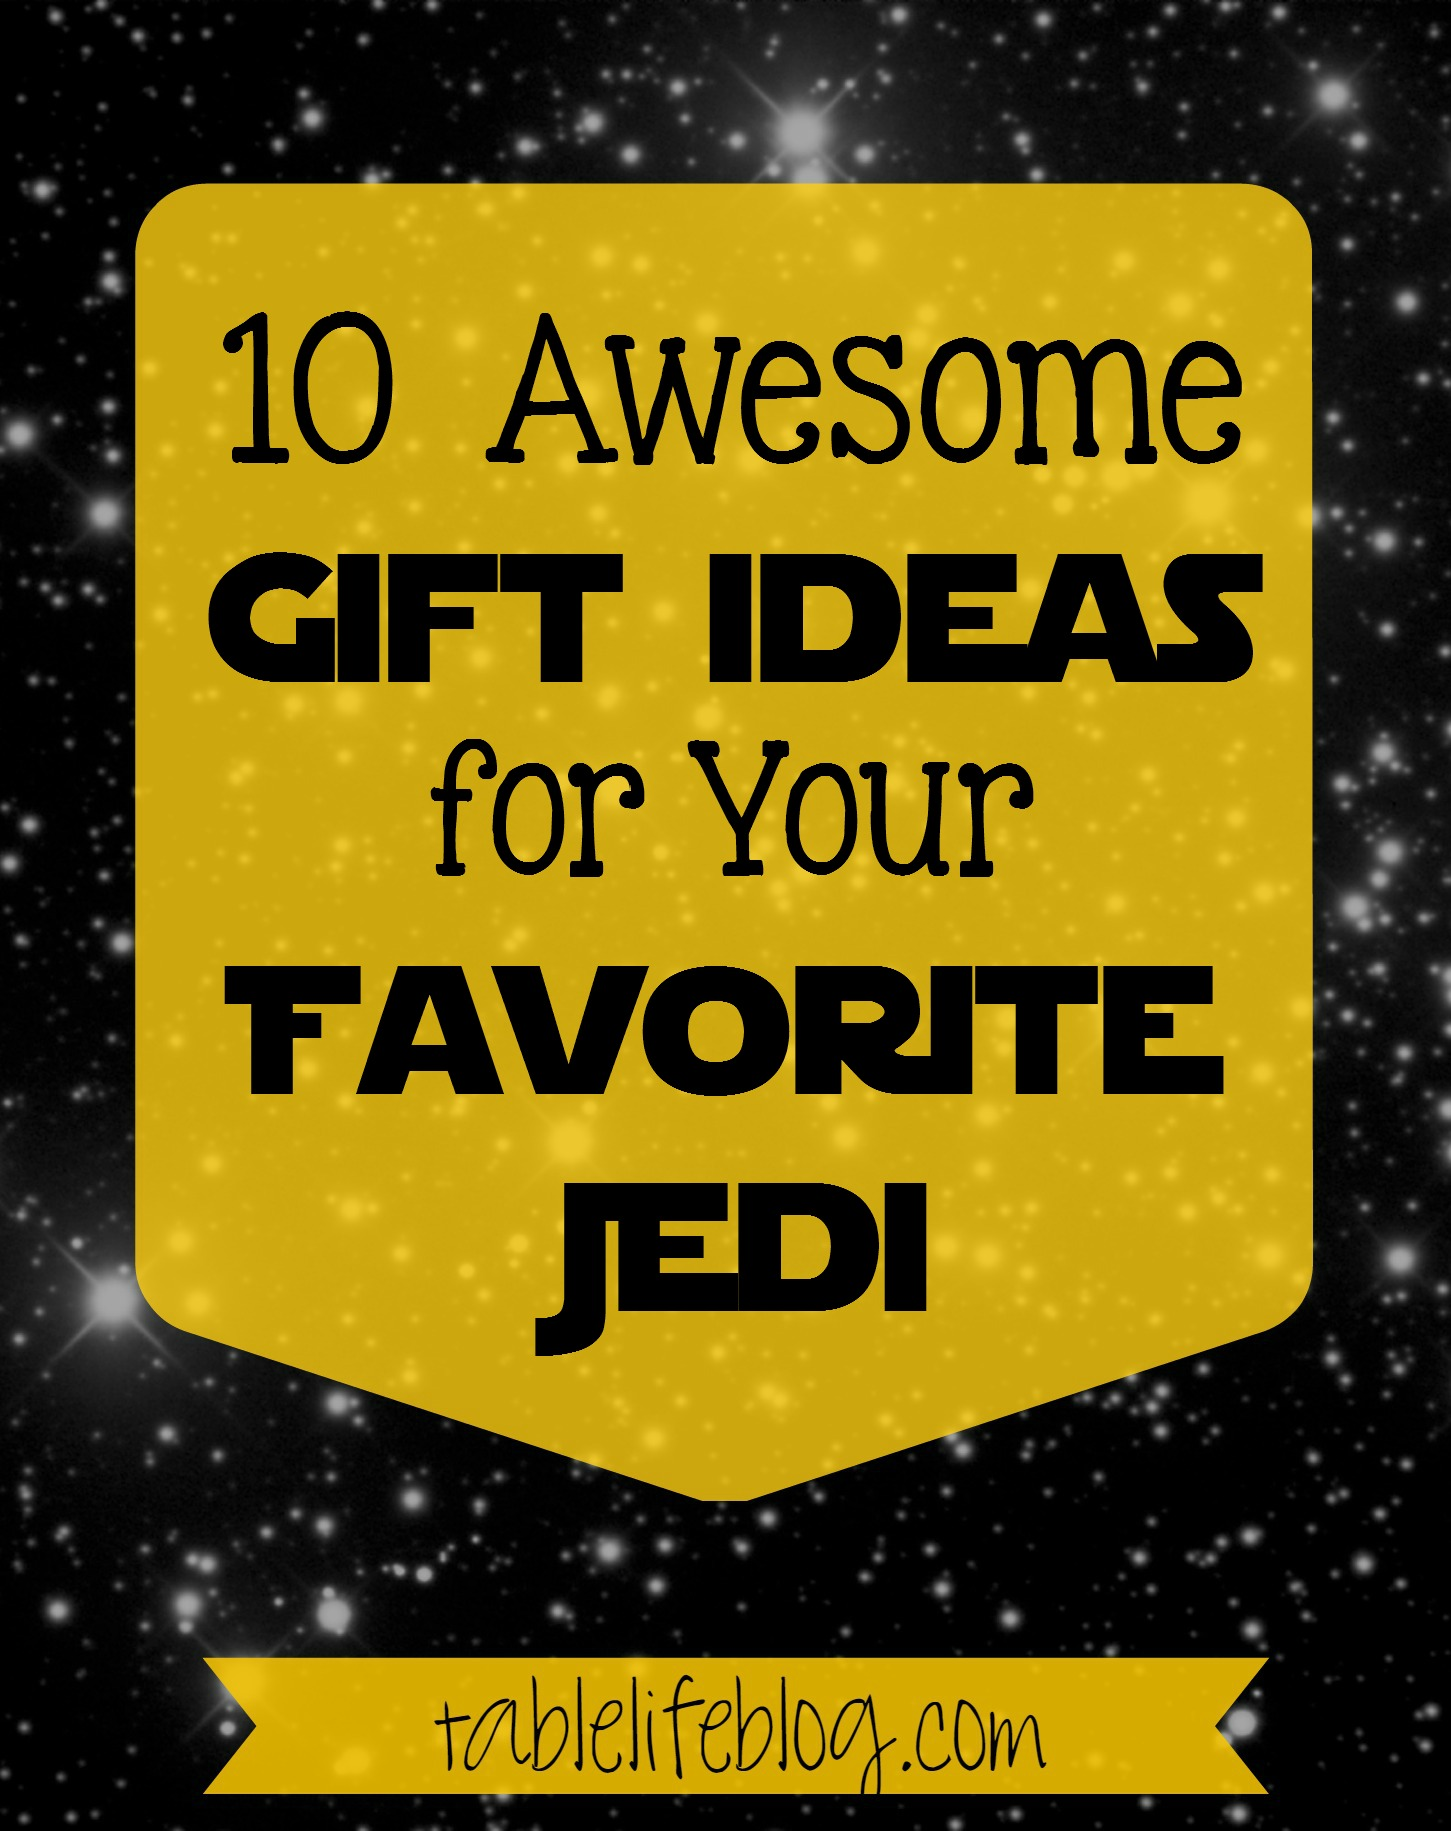 10 Awesome Gift Ideas for Your Favorite Jedi - Star Wars Gifts for Kids